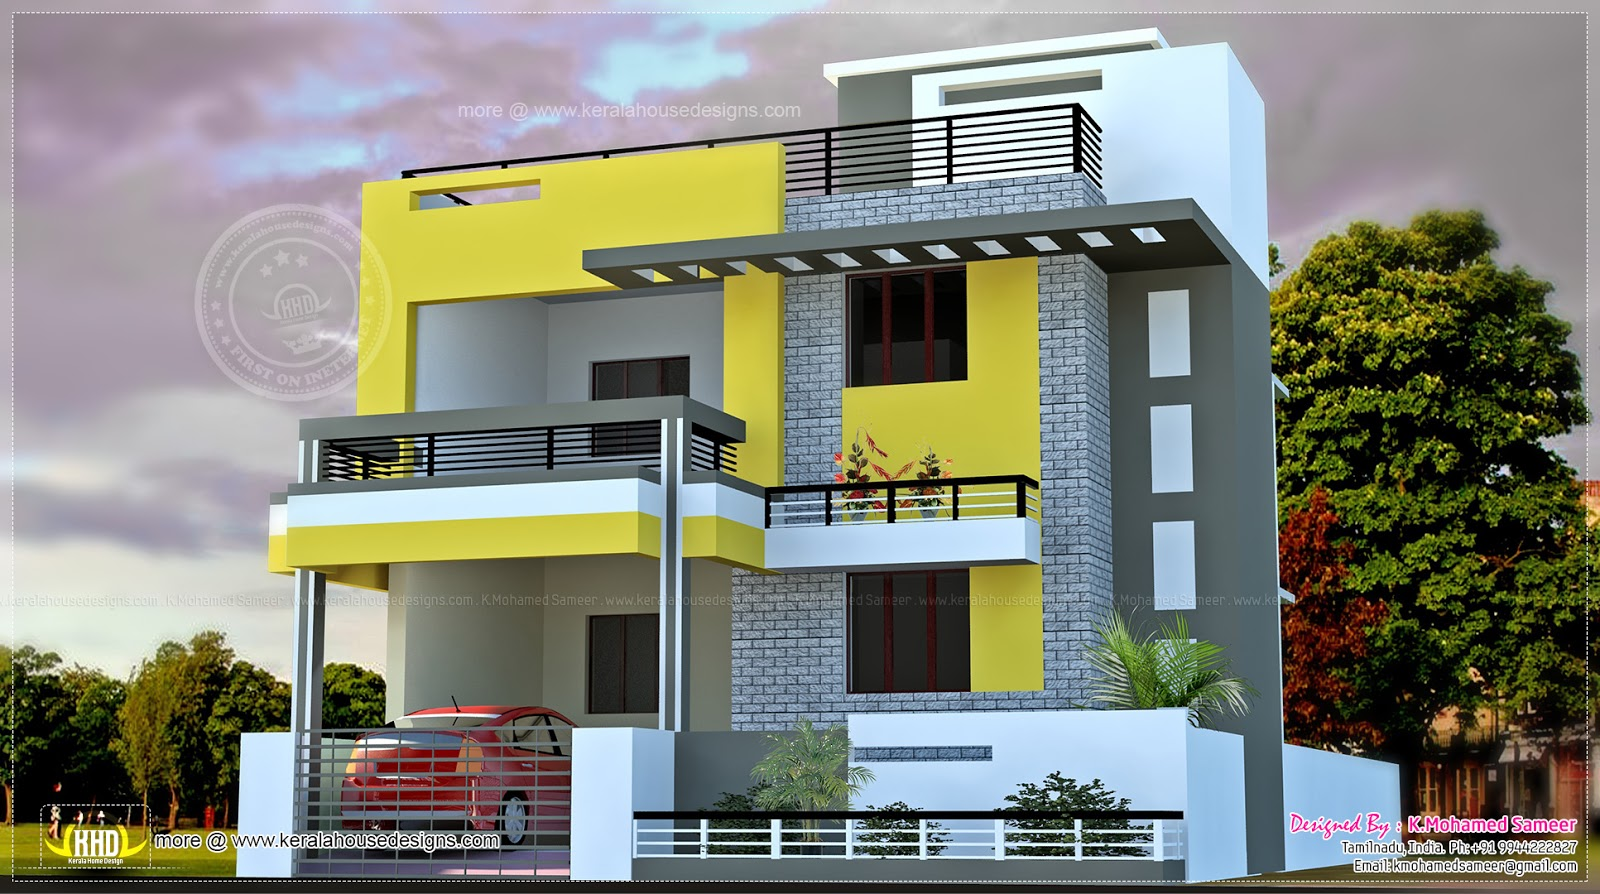 India house plan in modern style kerala home design and Indian model house plan design